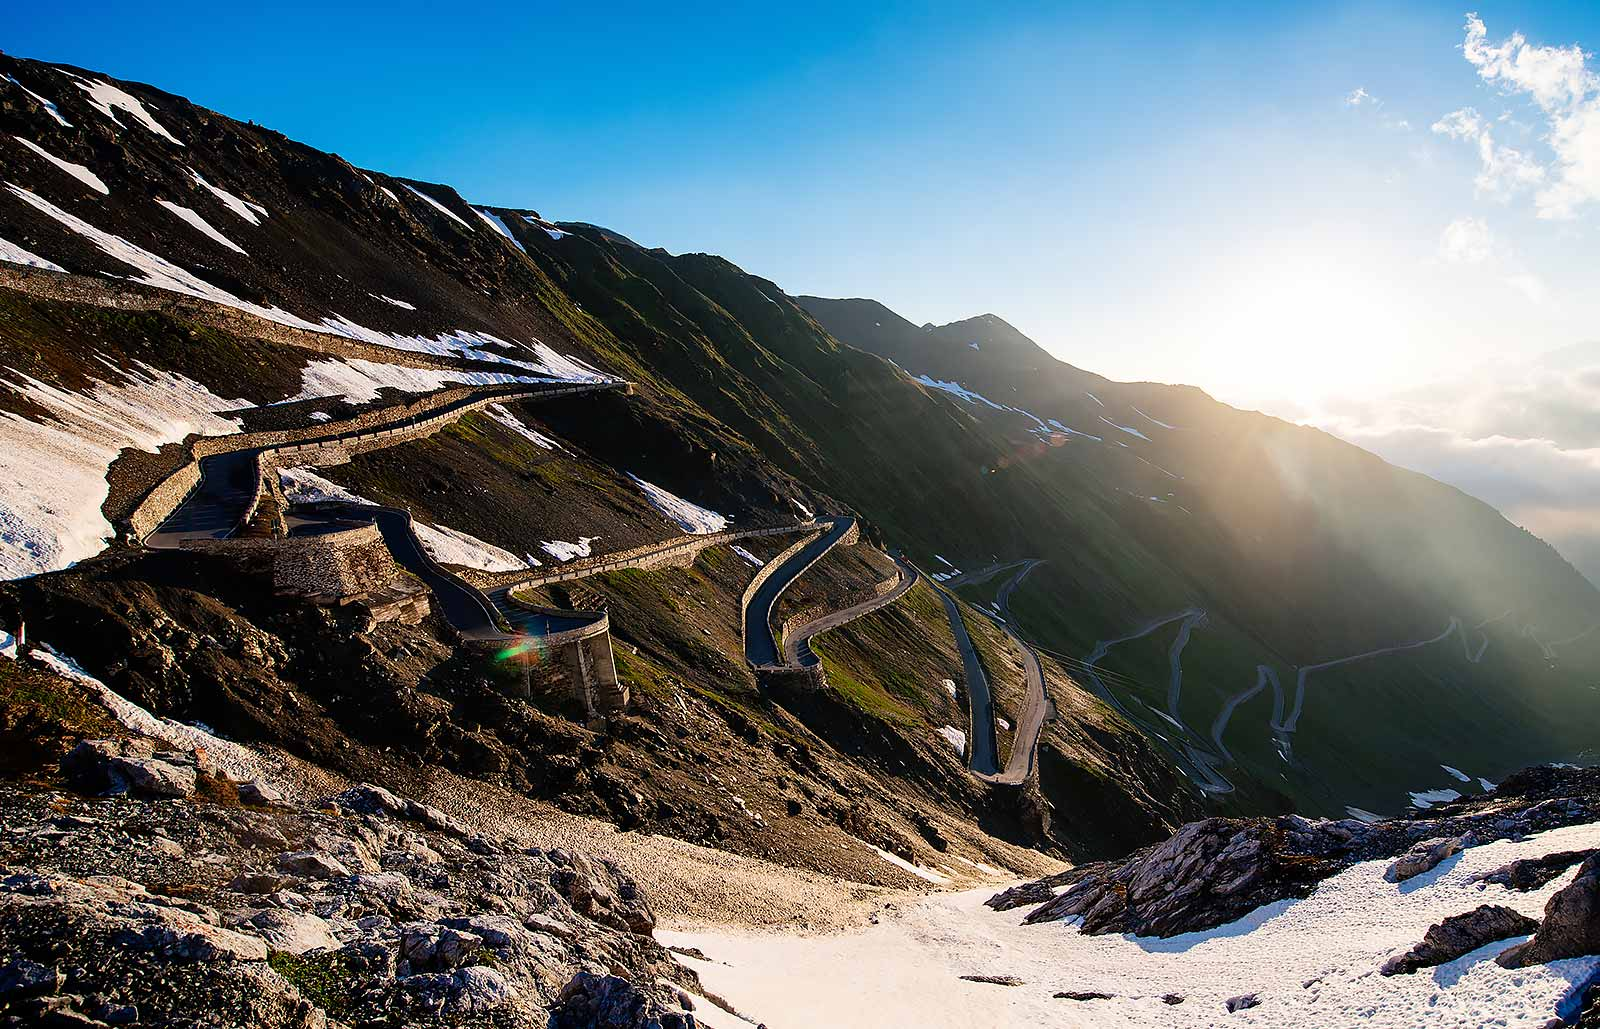 The winding road that leads to passo dello Stelvio covered with little snow